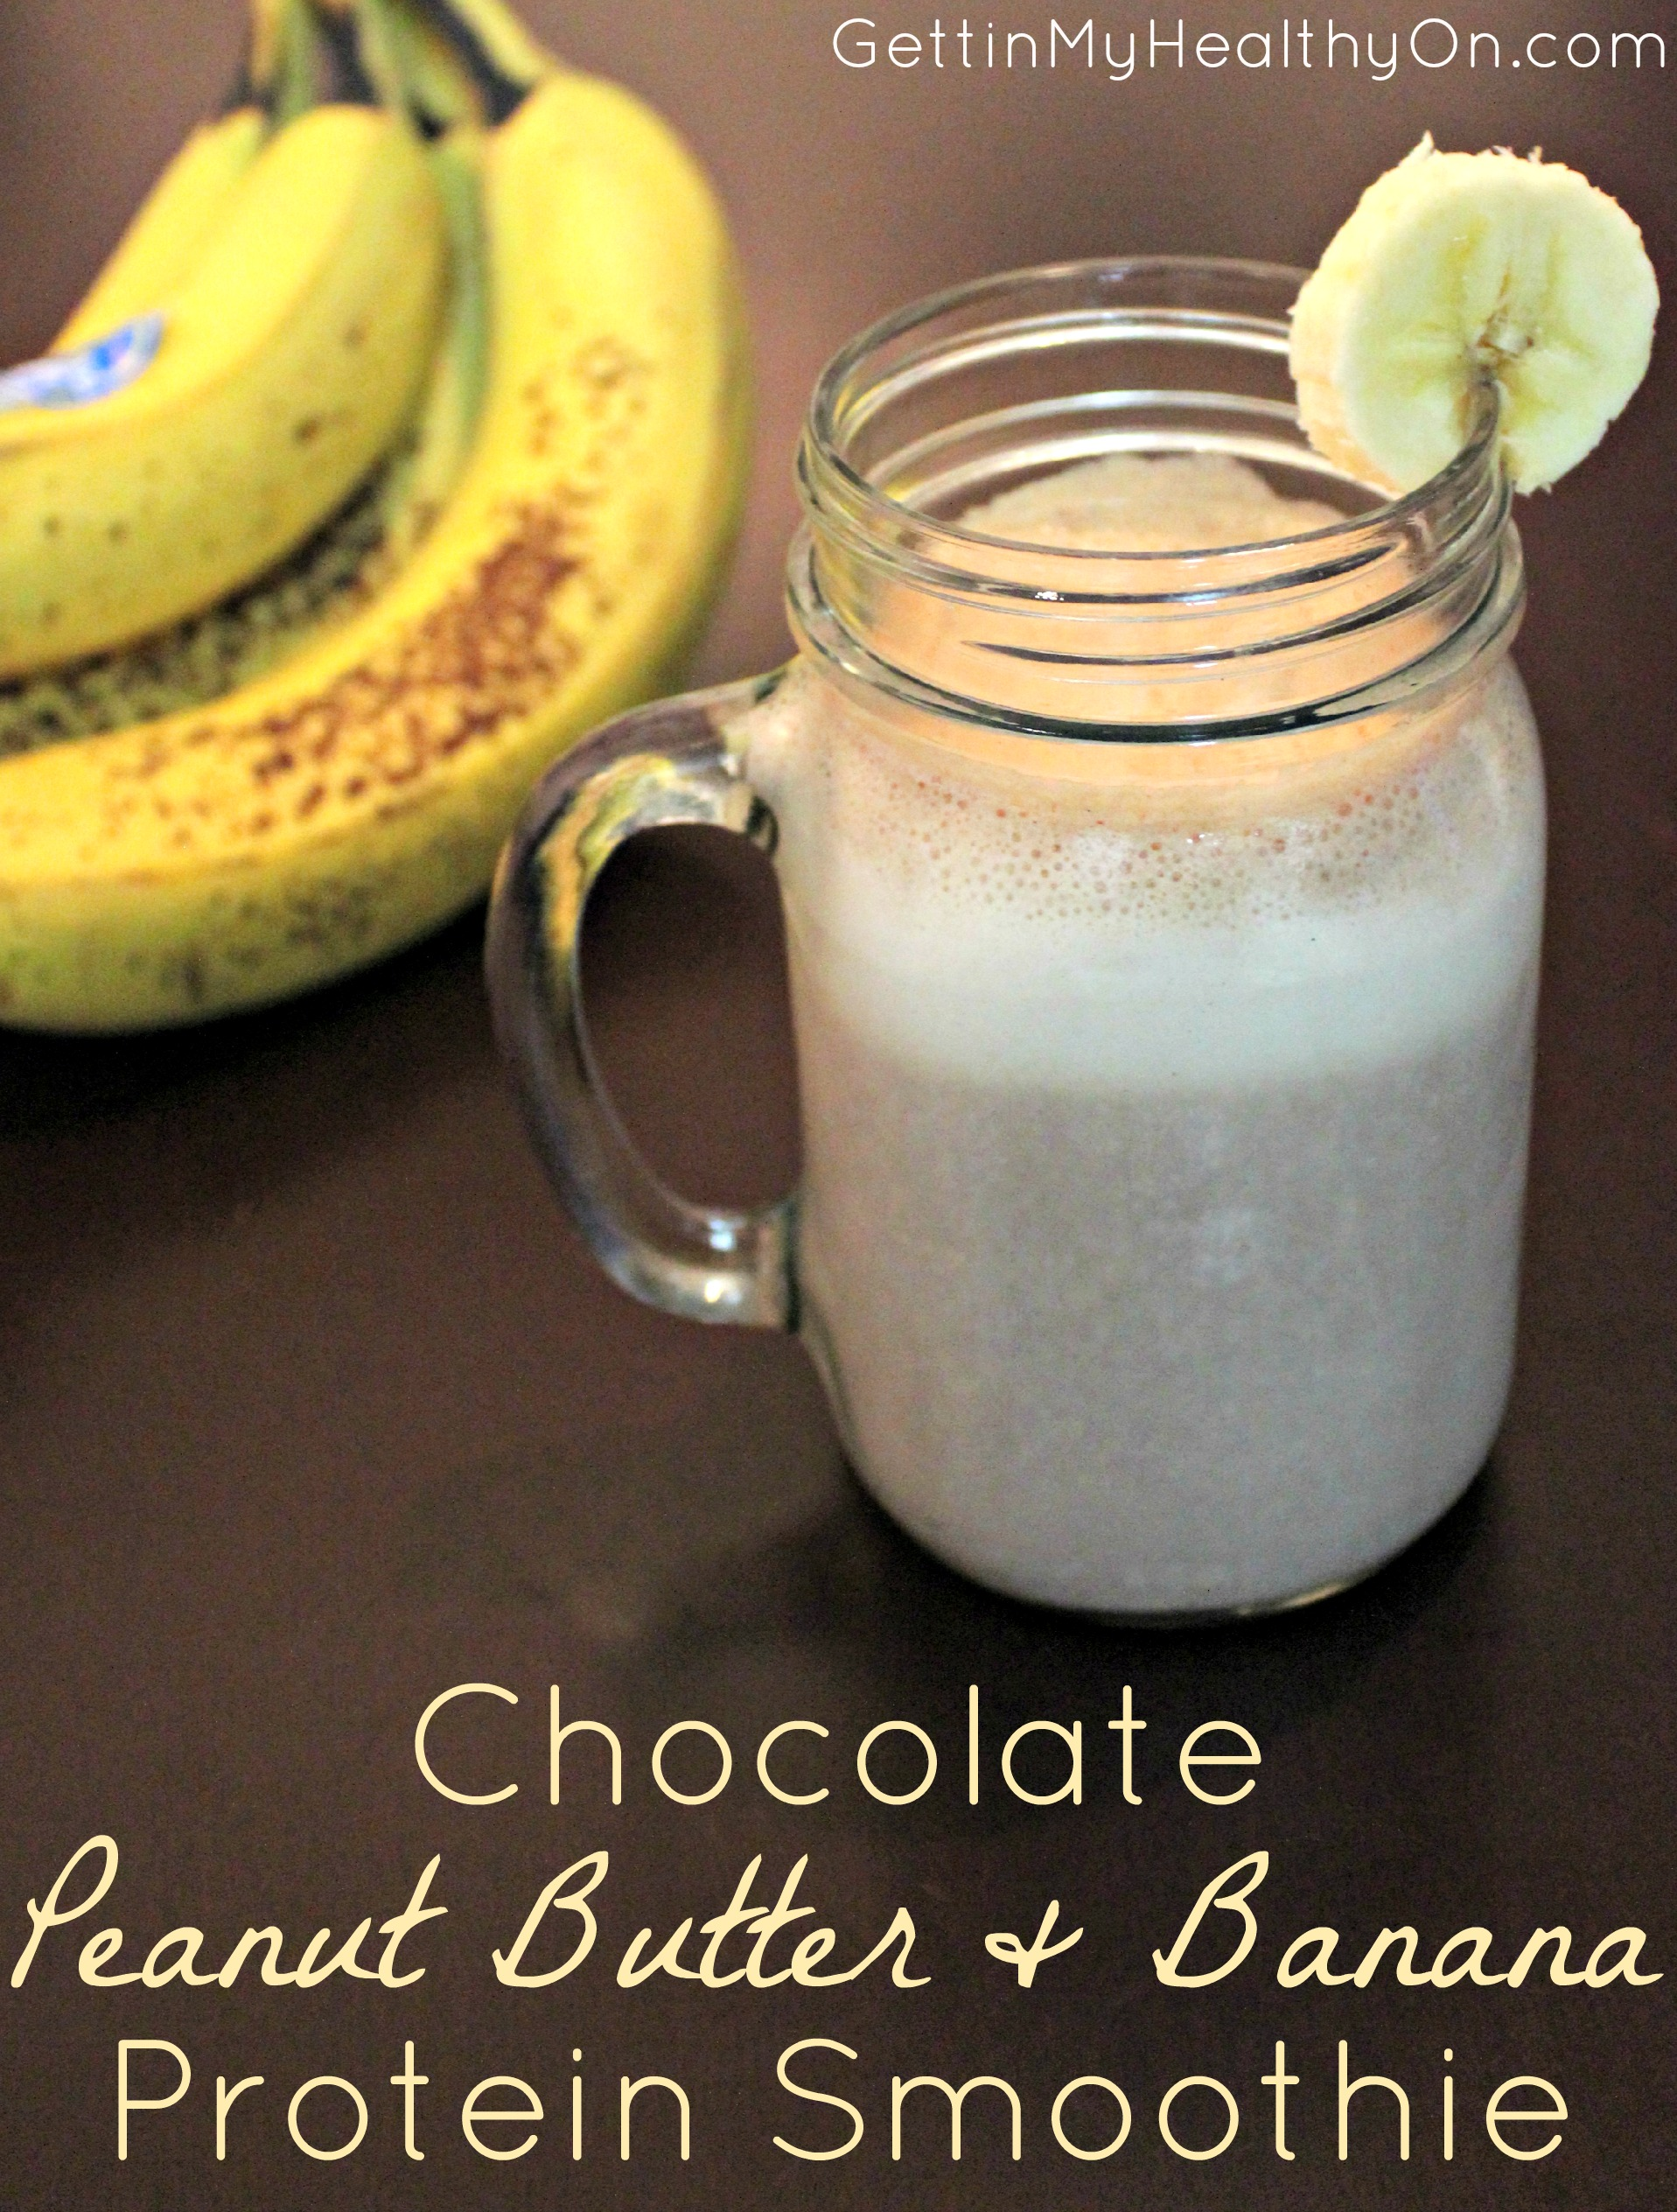 Chocolate Peanut Butter & Banana Protein Smoothie